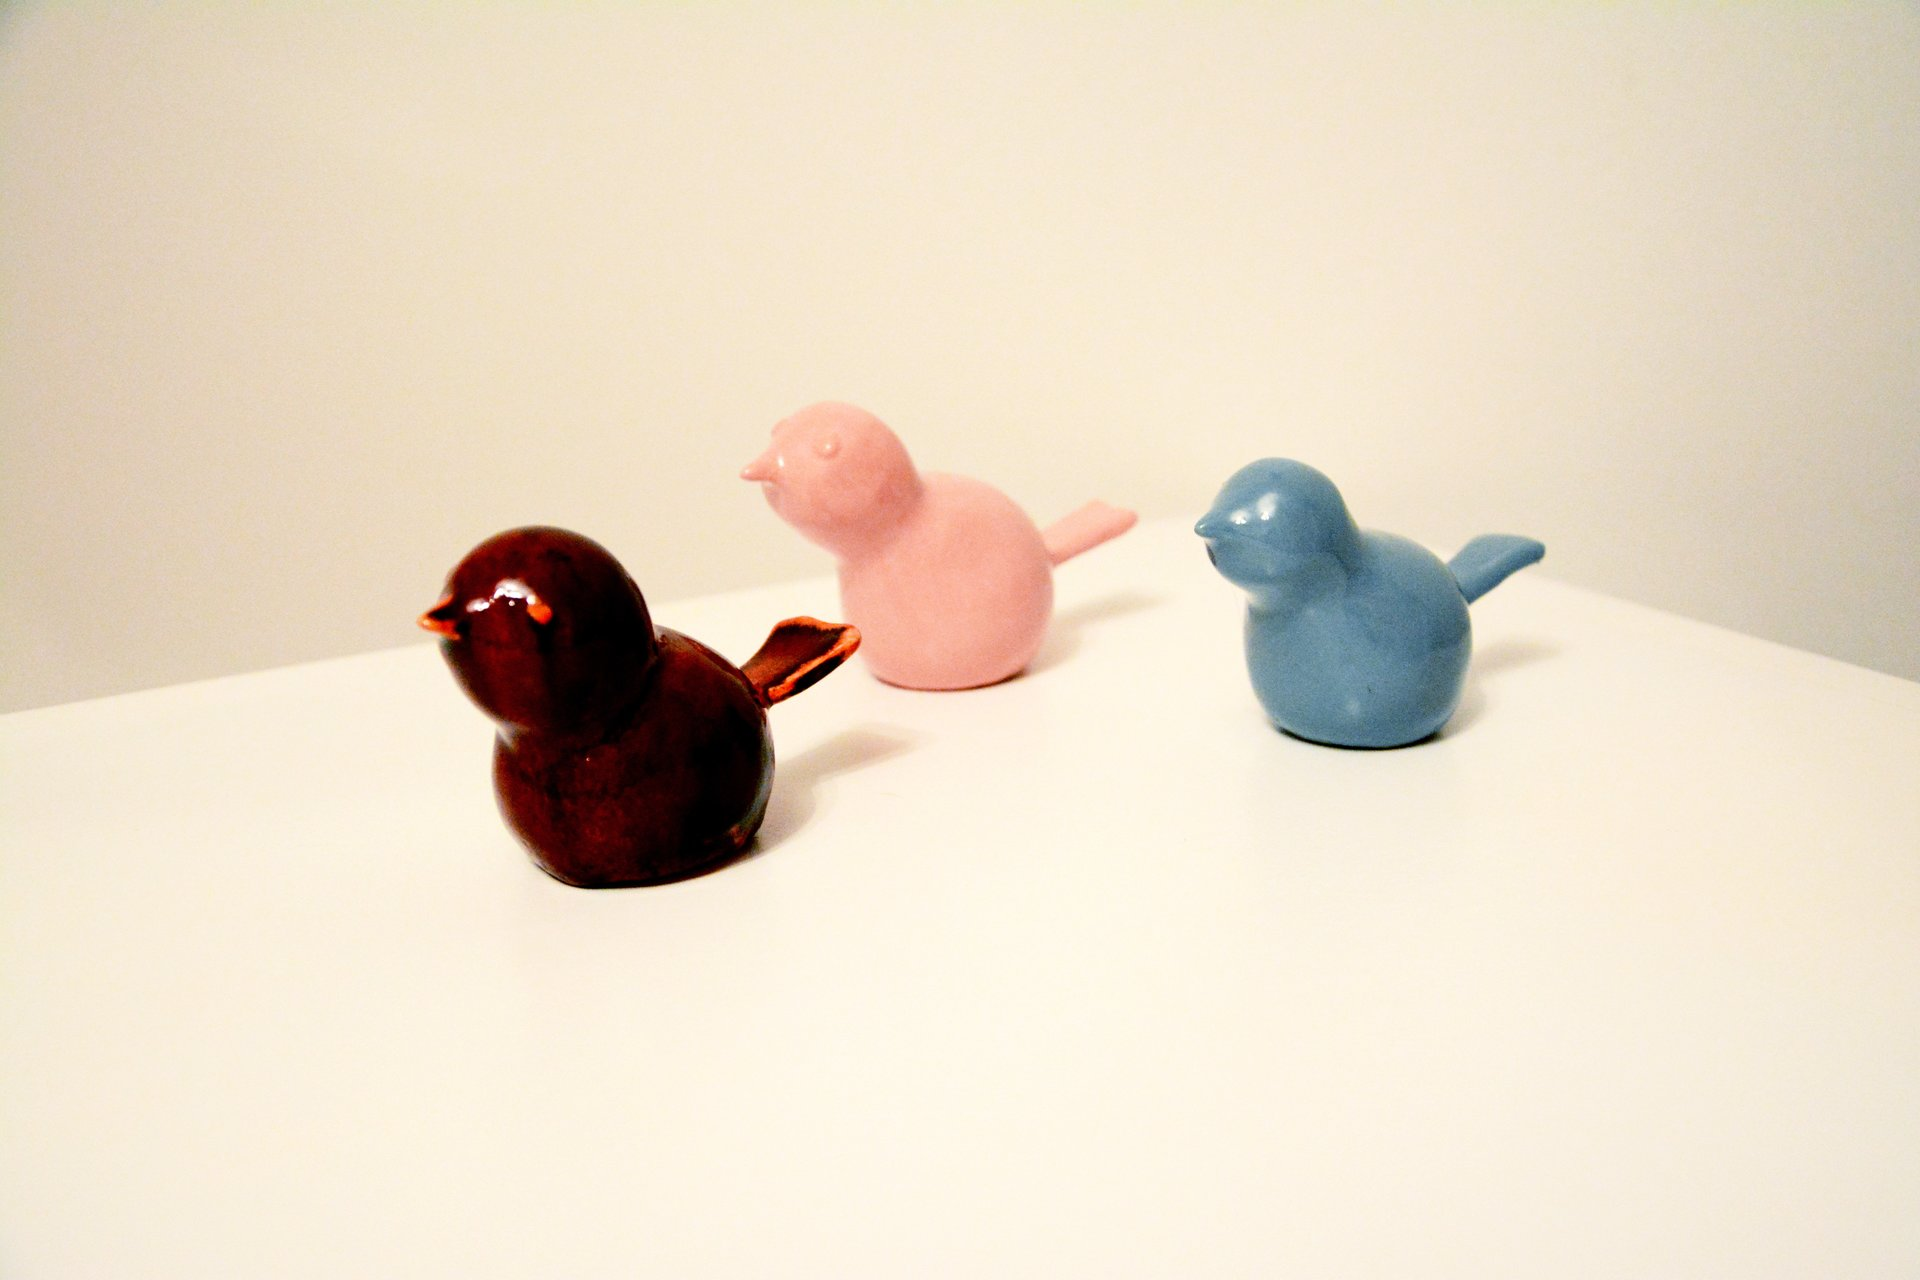 Trio Birds - Animals and birds, height - 5 cm, photo 1 of 2.